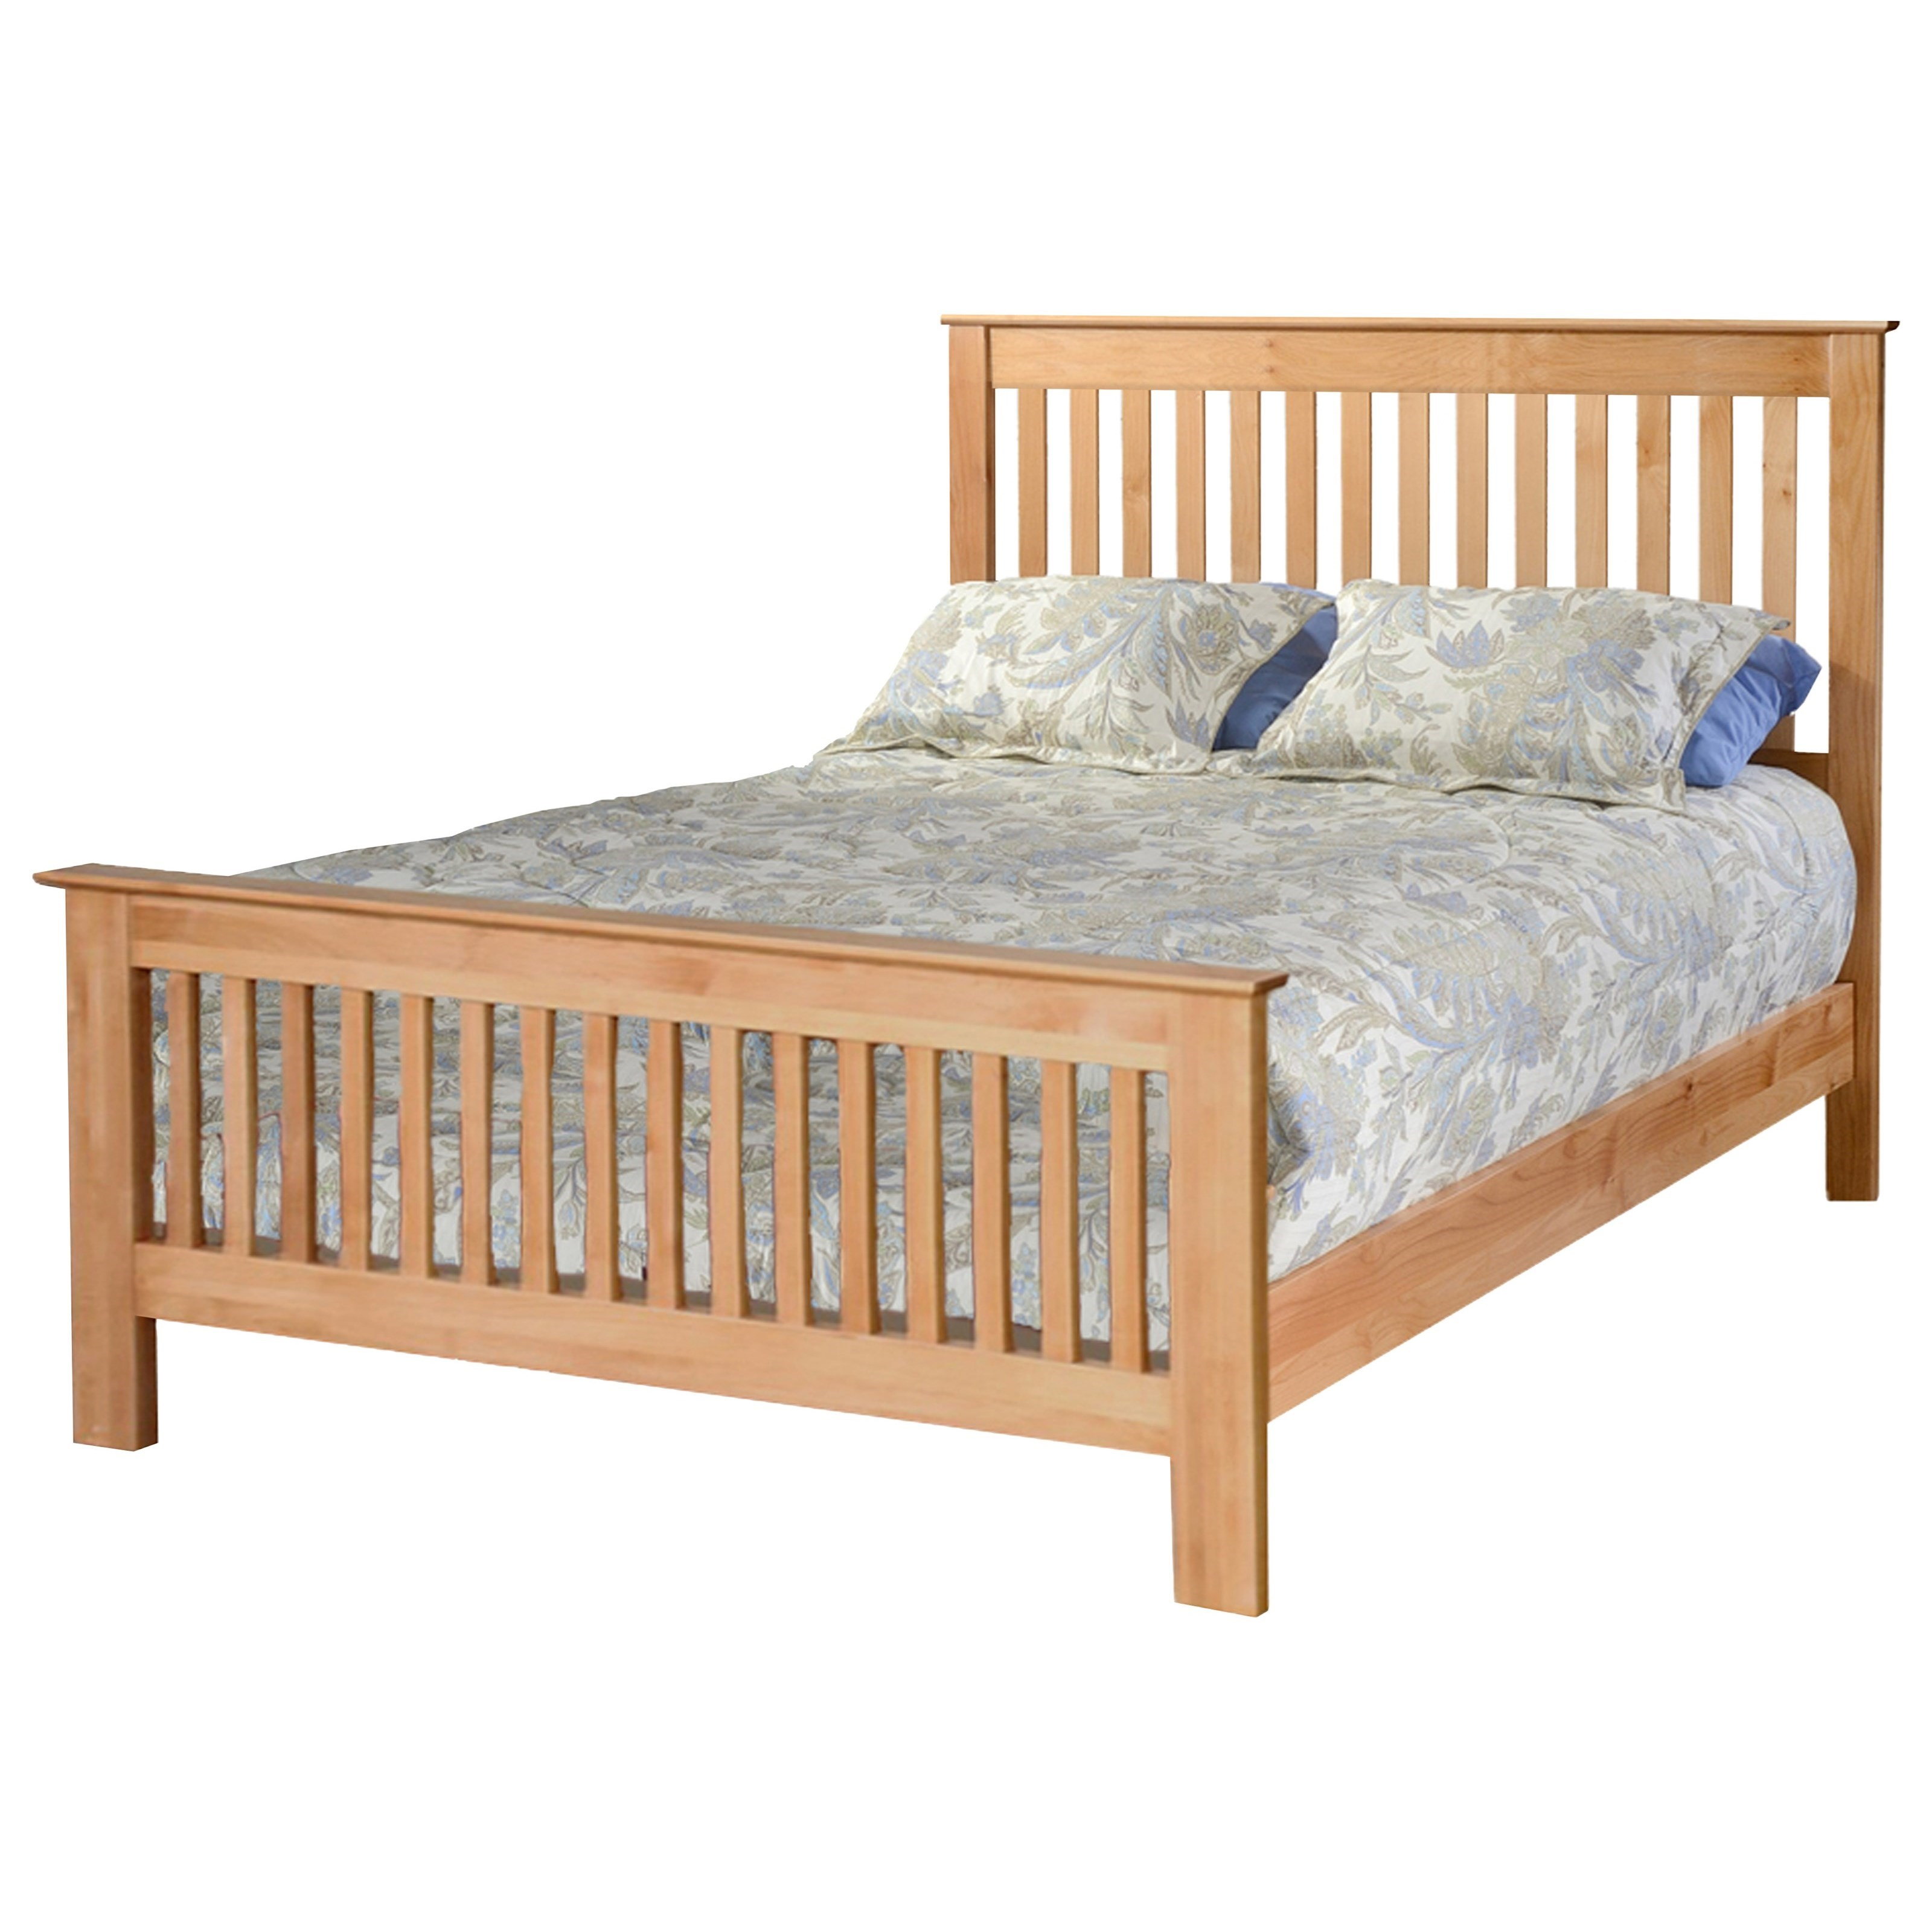 Shaker Queen Slat Bed by Archbold Furniture at Mueller Furniture